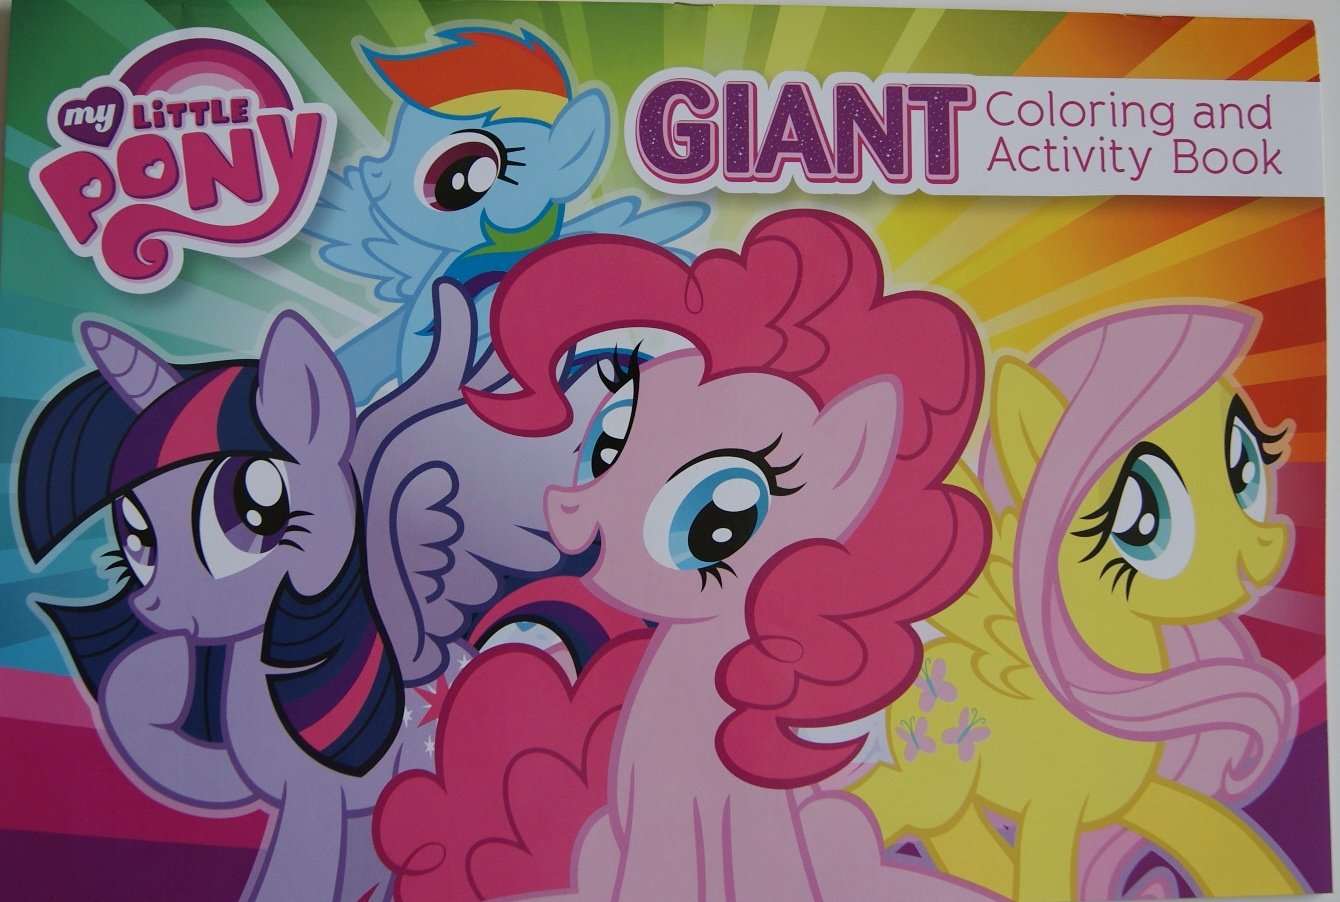 My Little Pony Giant Coloring and Activity Book my counting sticker activity book